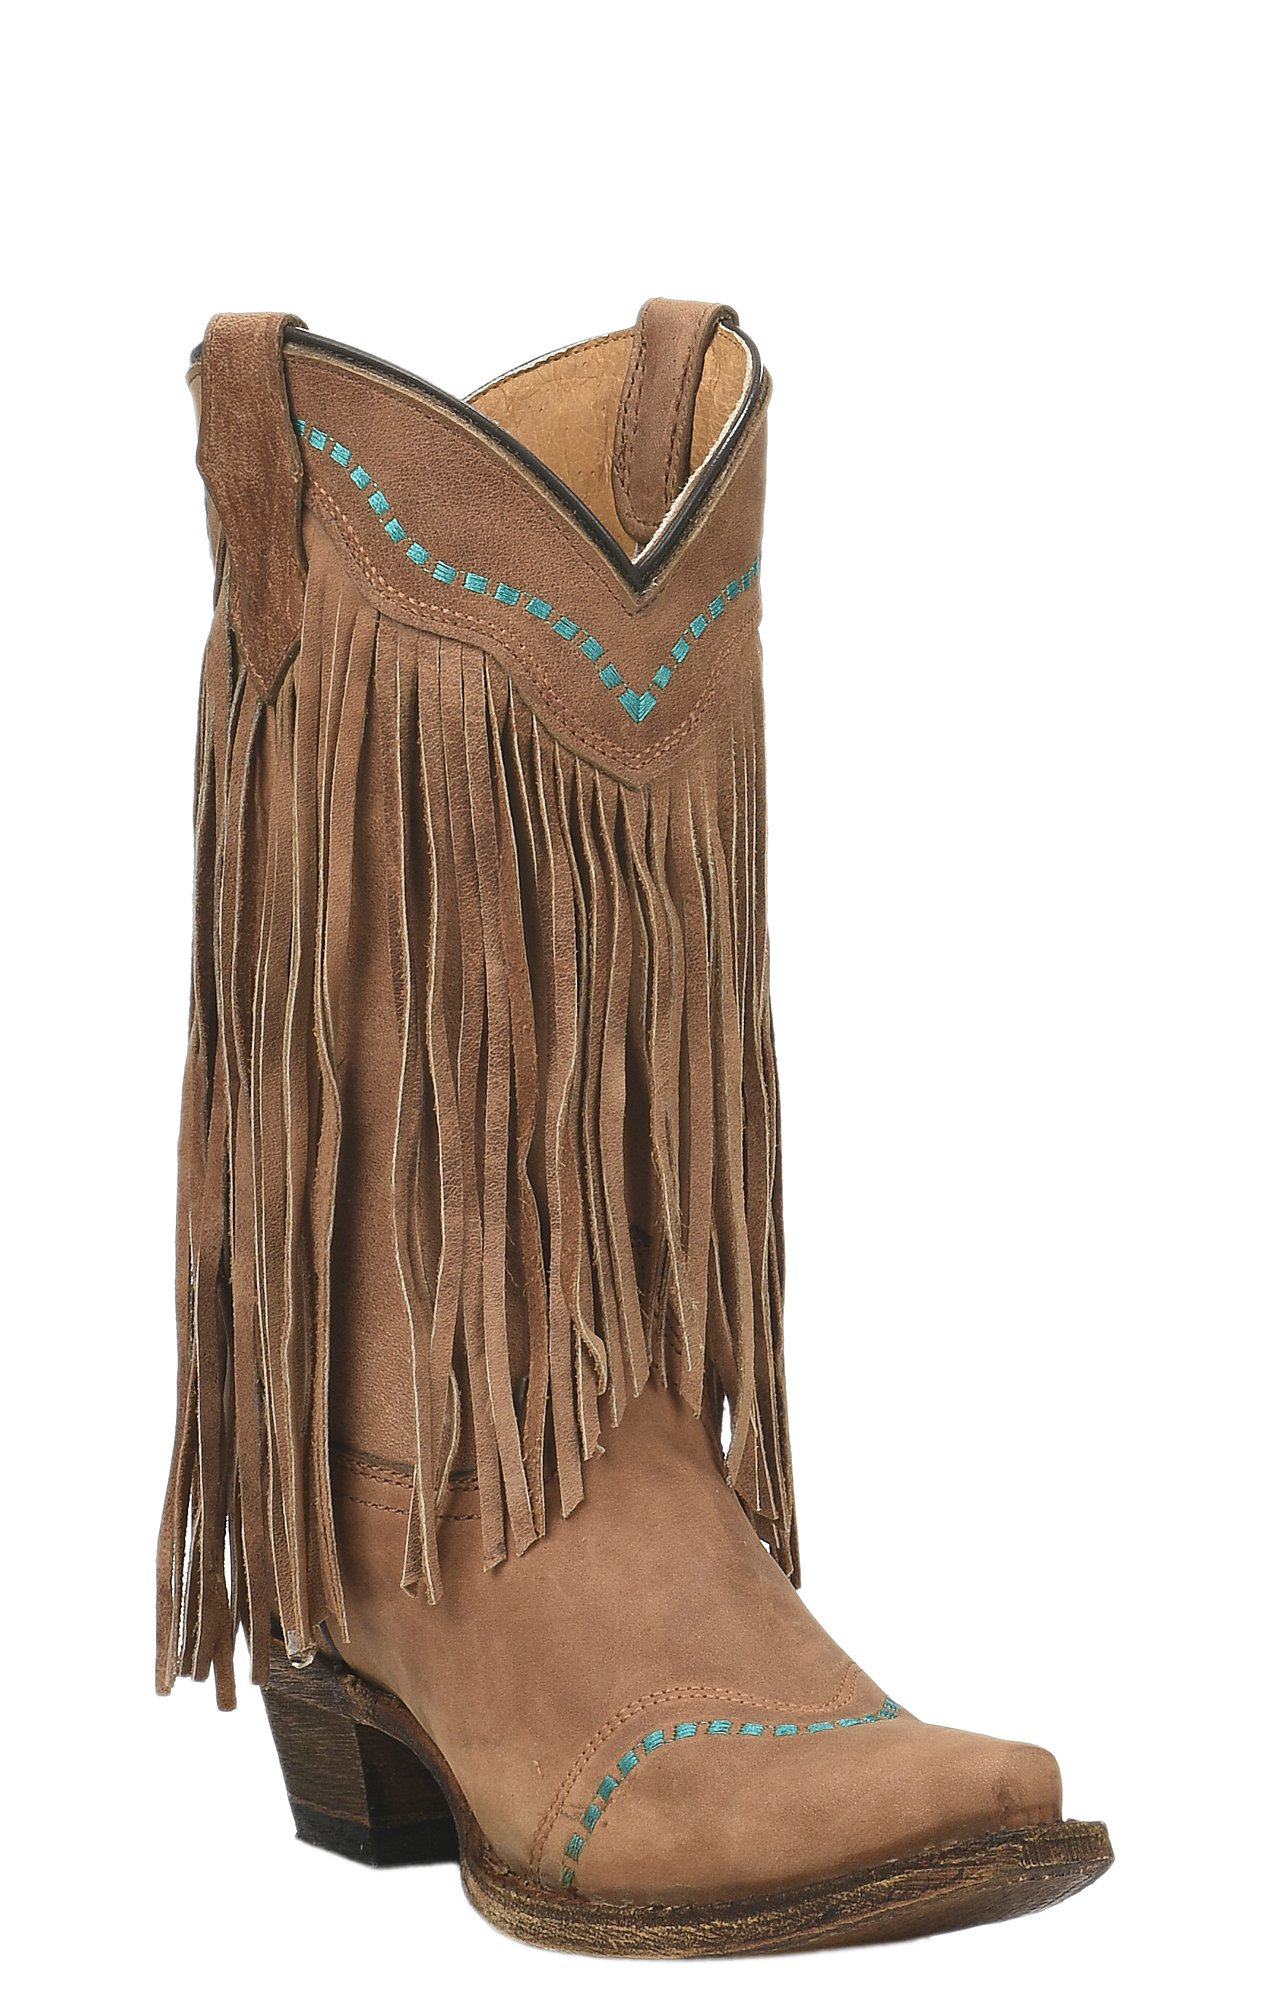 Kids Cowboy Boots | Girls Cowgirl & Boys Cowboy Boots | Cavender's